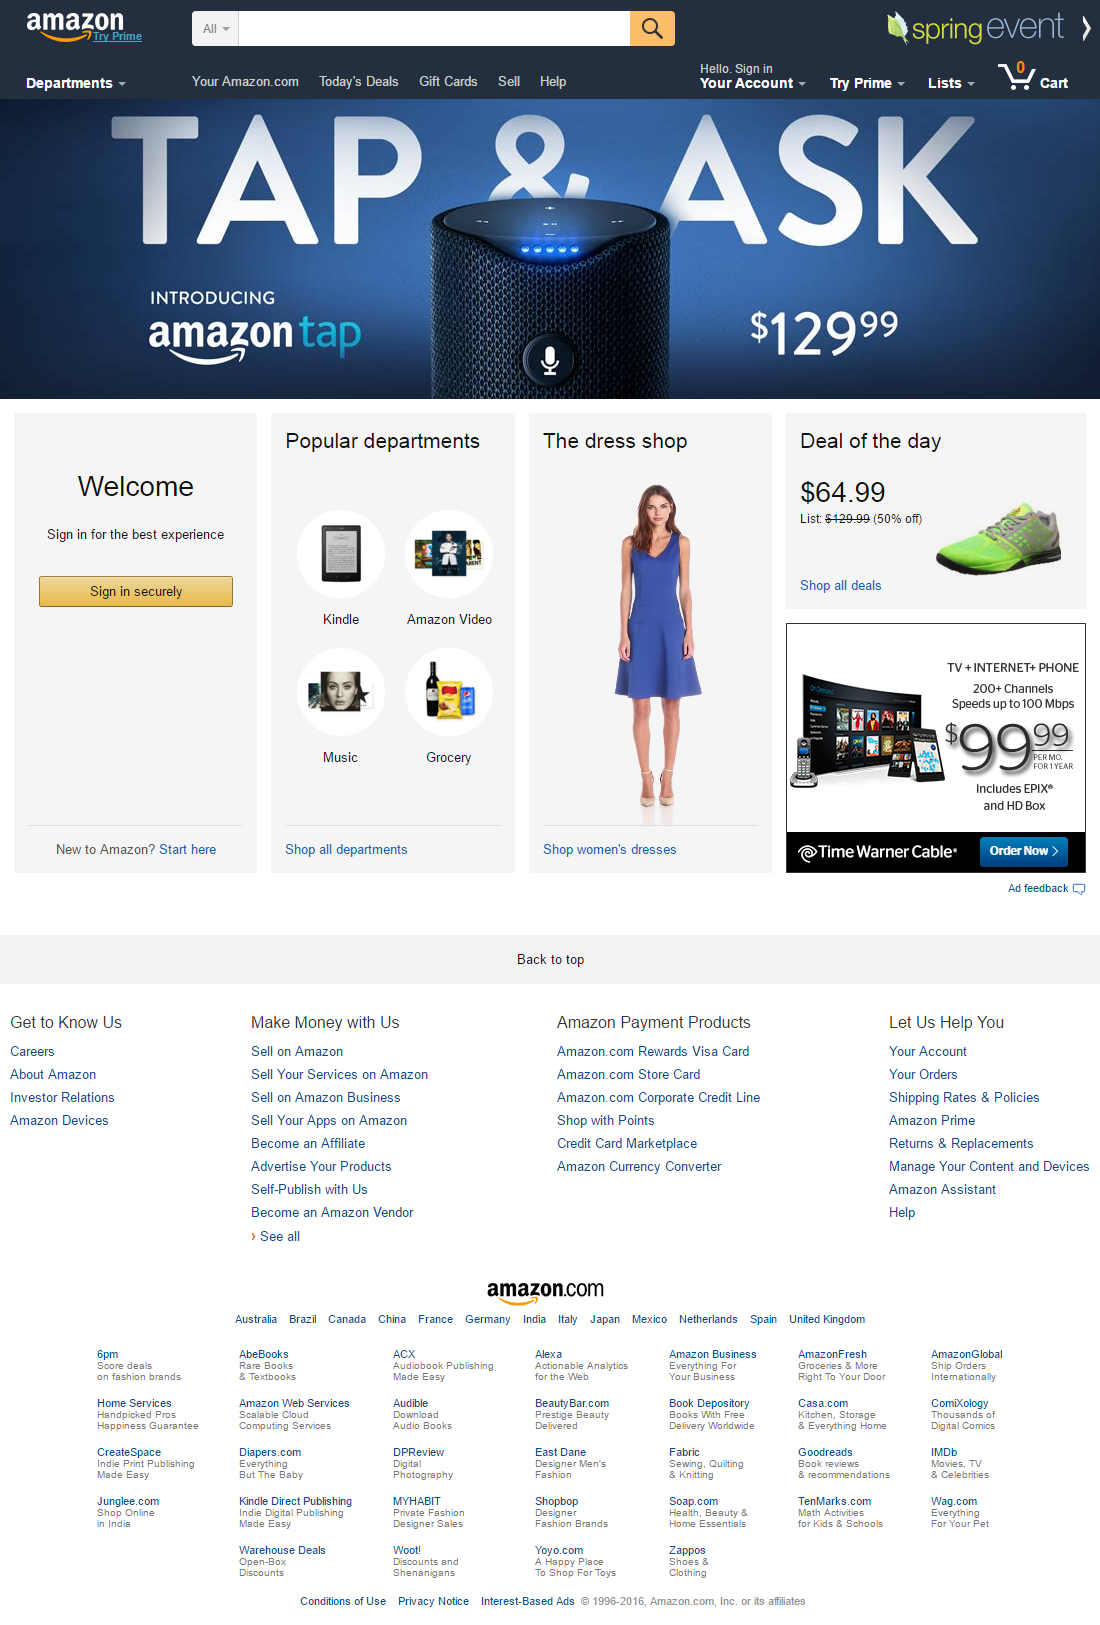 amazon email marketing case study It's a complete marketing plan with background and history, situation analysis, marketing strategies and implementation  netflix case study analysis.